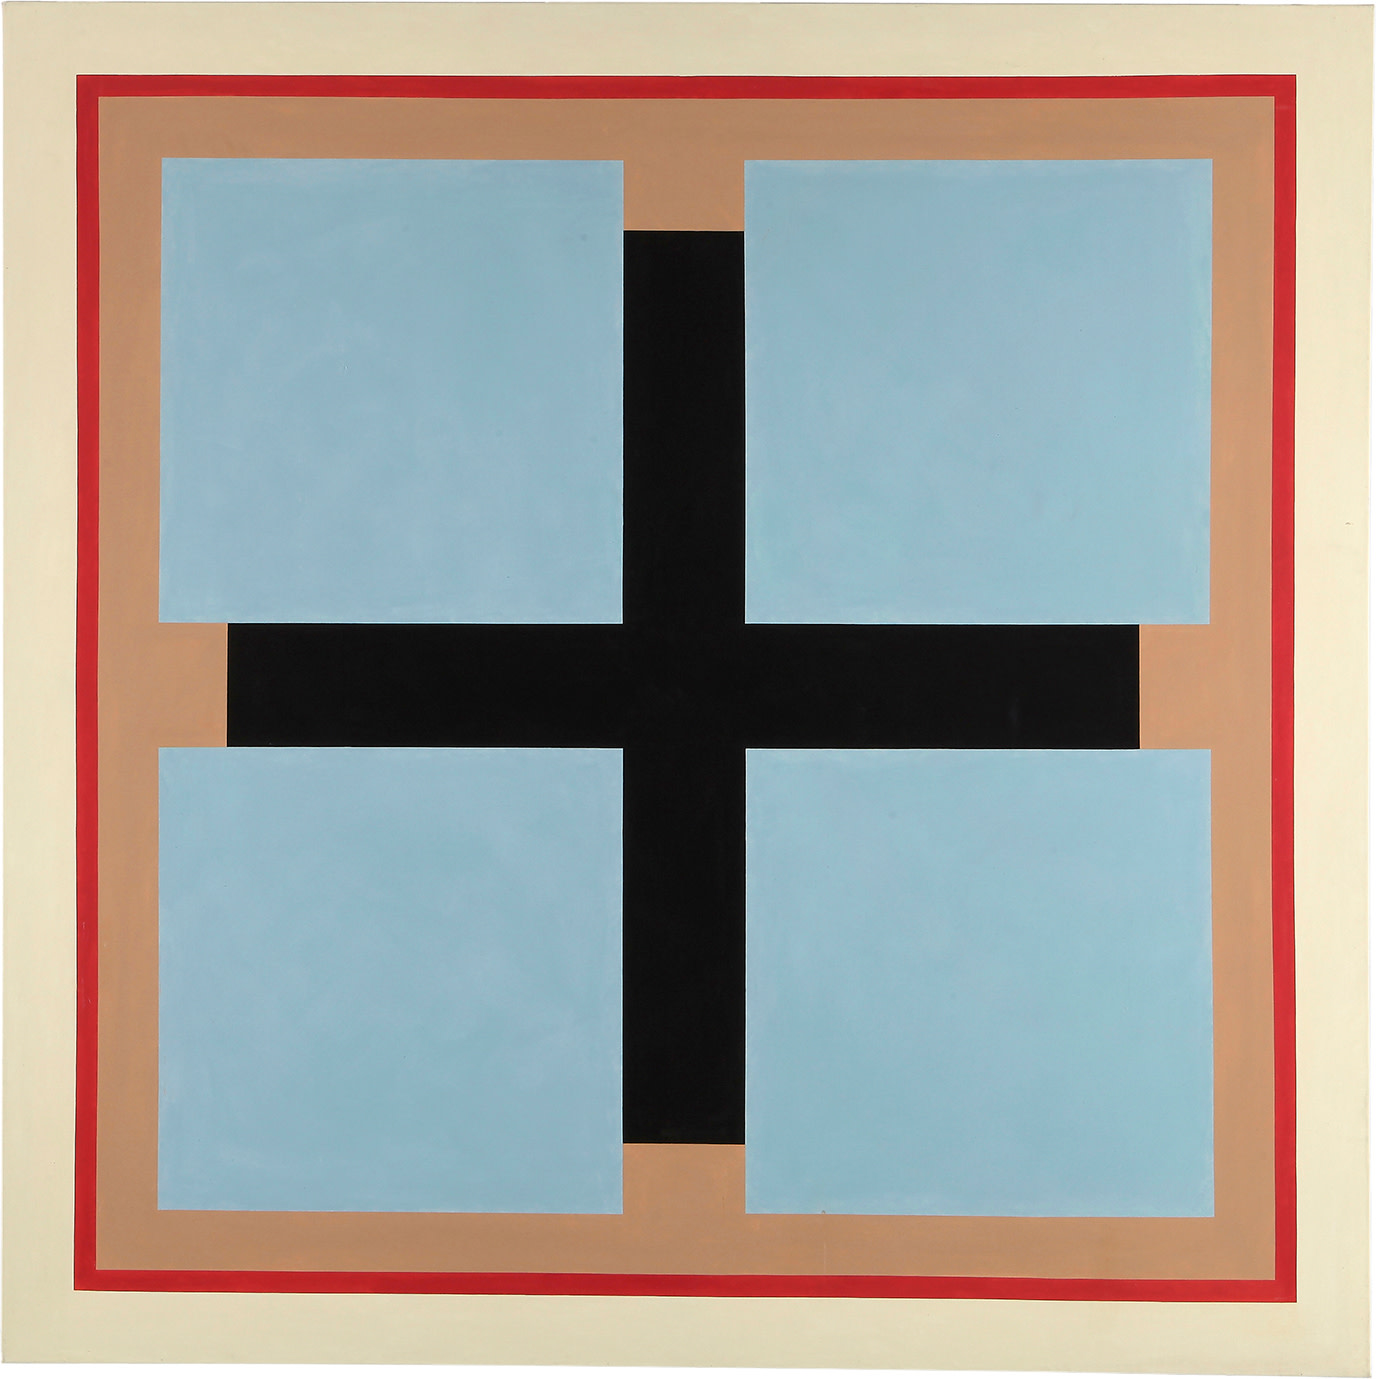 Painting no. 7, 1967